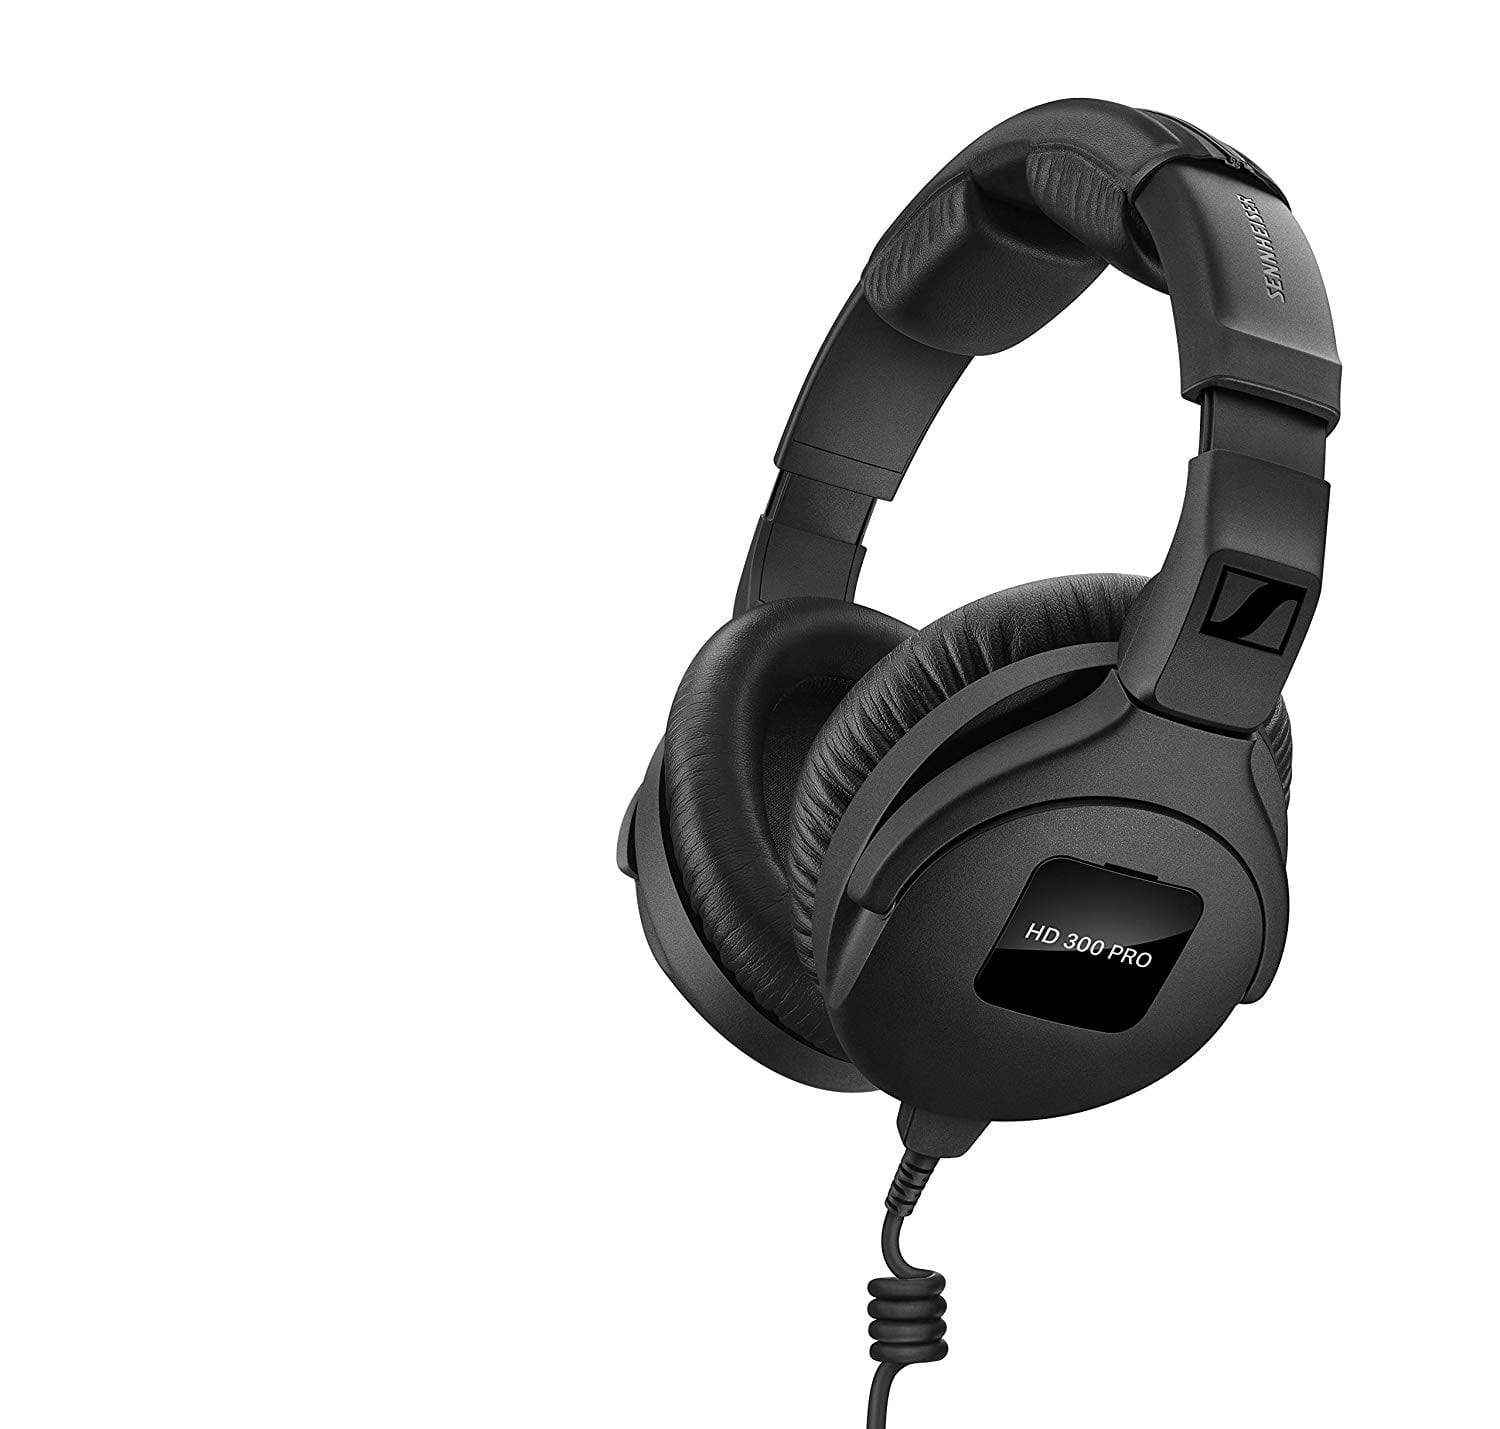 Sennheiser Headphones, Black (HD 300 PRO) for $99.95